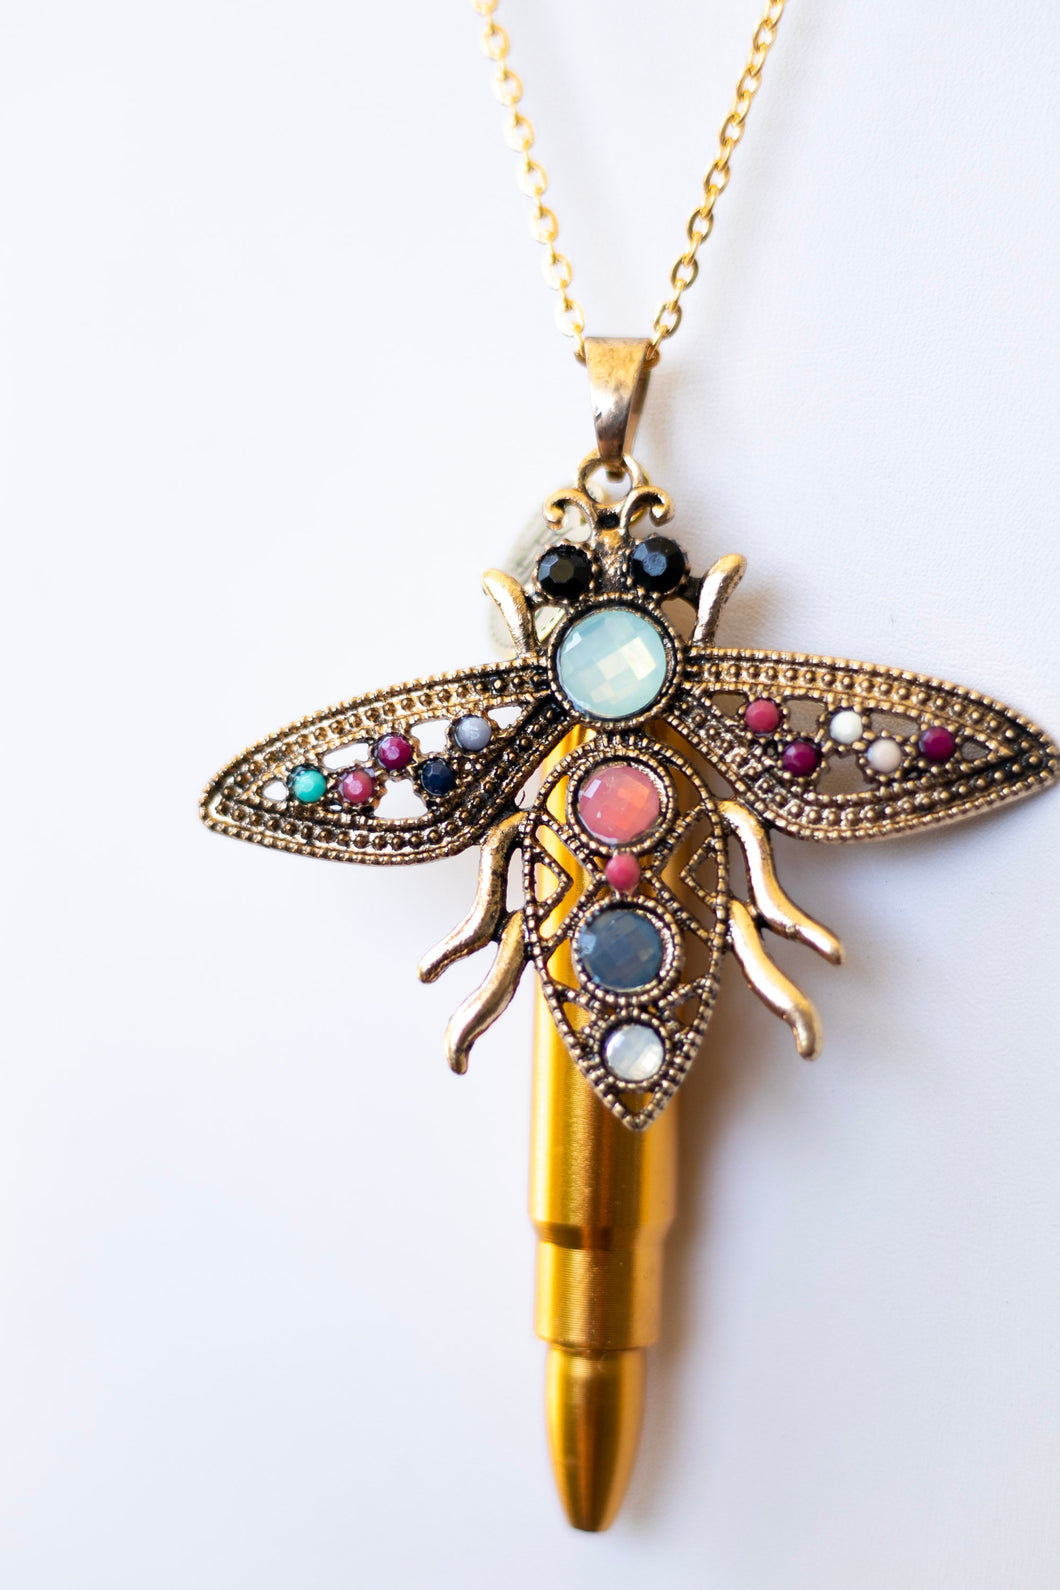 The Spanish Bee Necklace